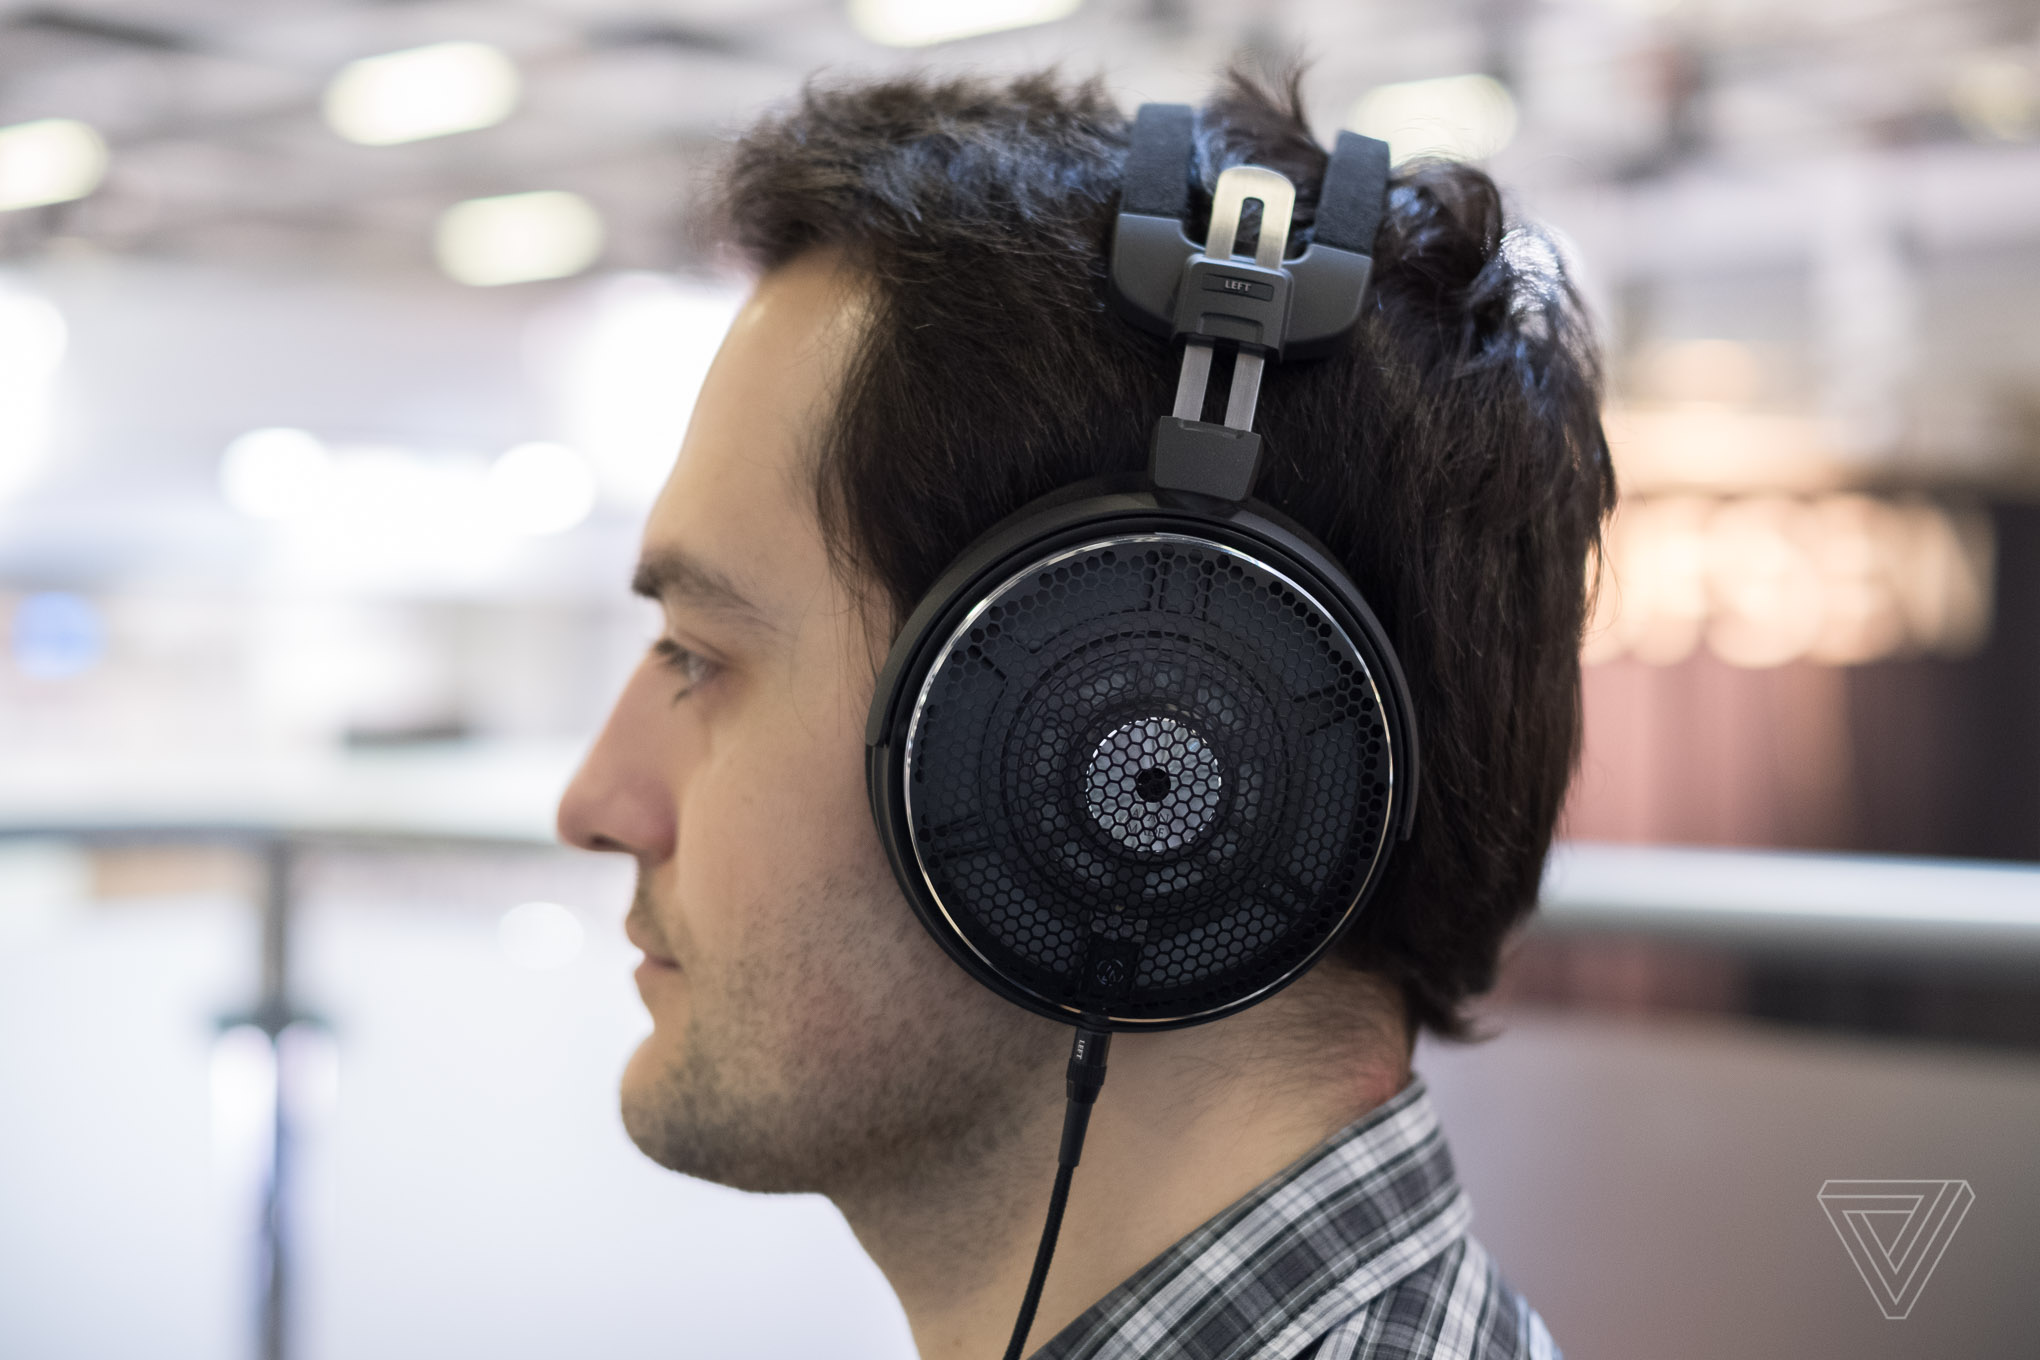 The 10 essential tracks to listen to with new headphones